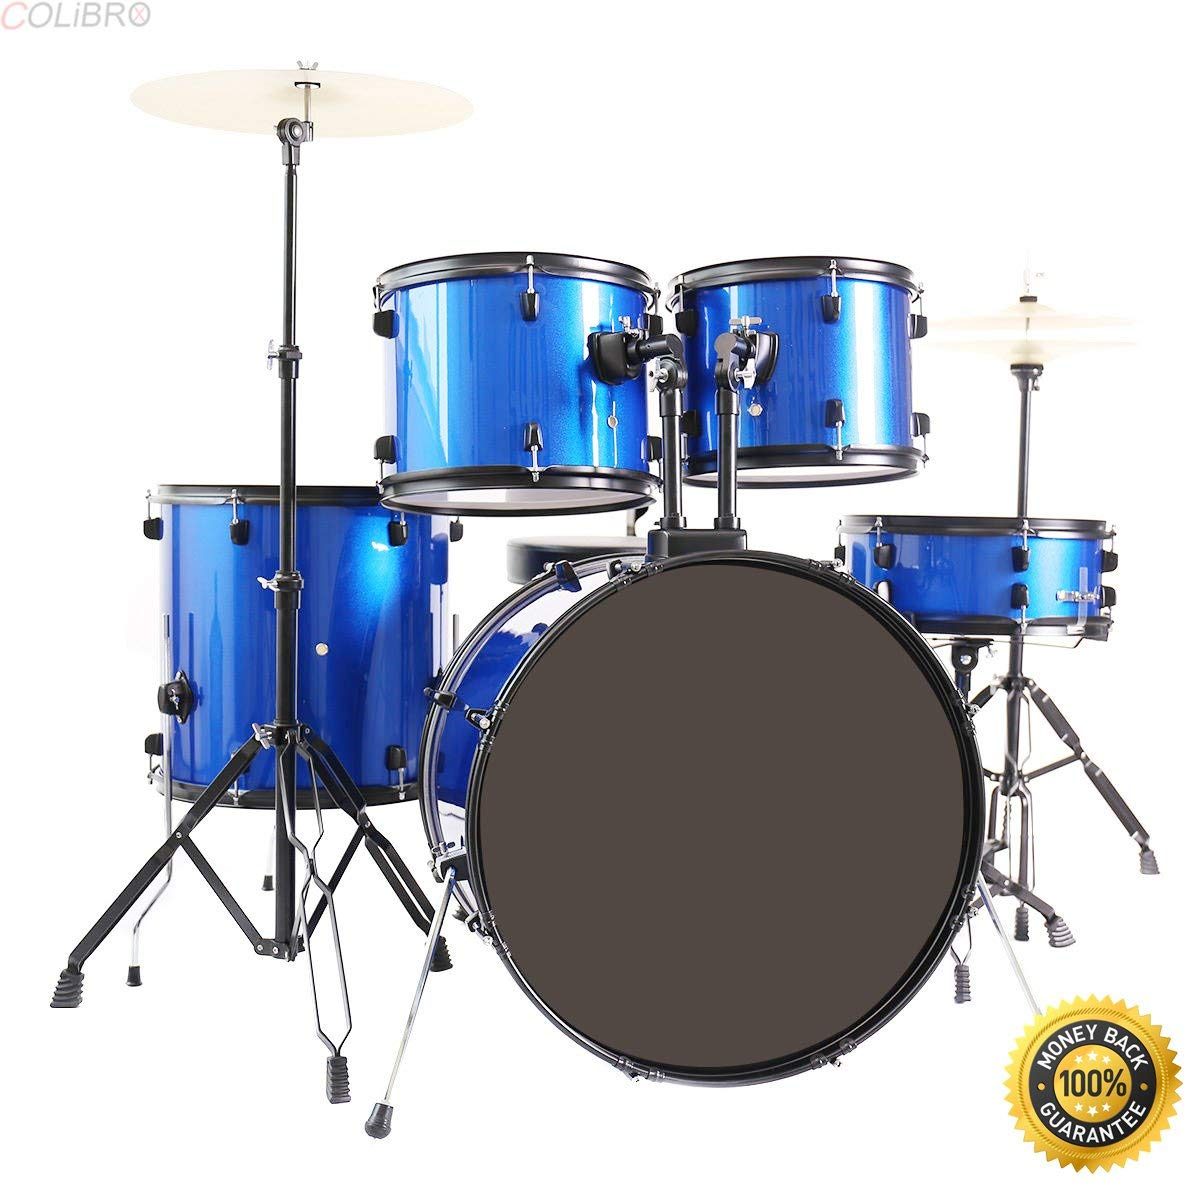 COLIBROX--New 5-Piece Full Size Complete Adult Drum Set +Cymbal+Throne Blue,musicians institute,drum set,Full Size 5-Piece Senior Drum Set ,Full Size Complete Adult Drum Set